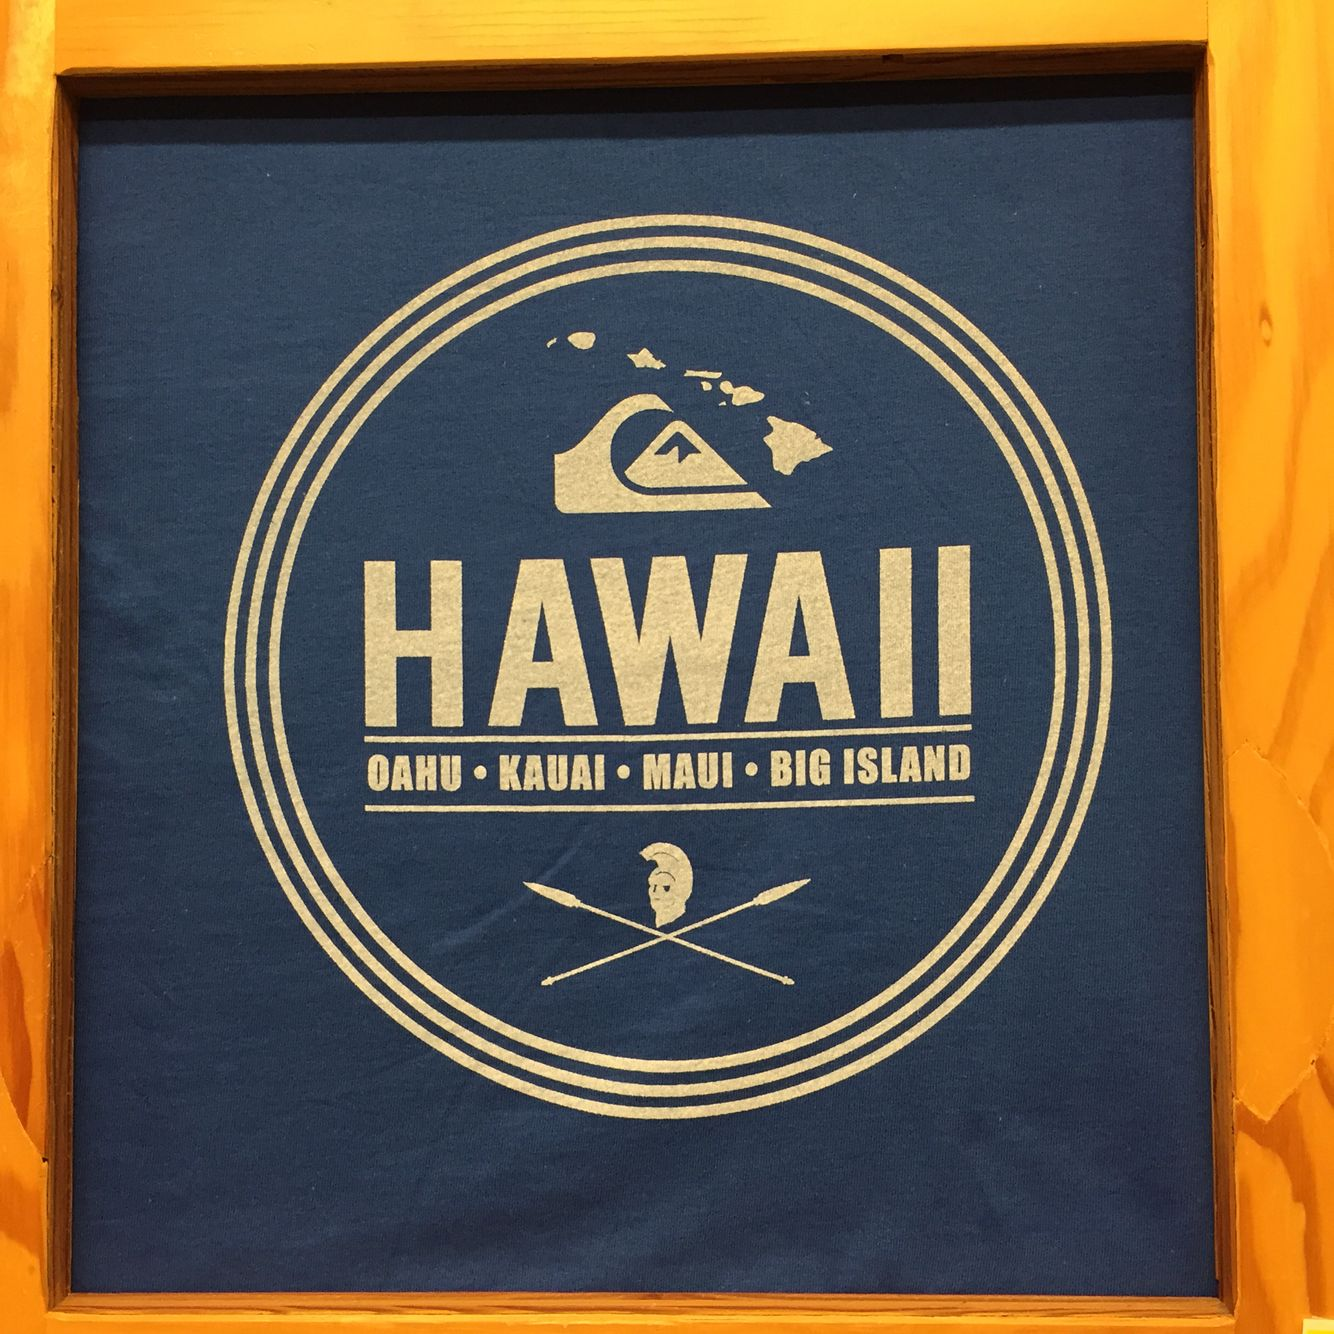 The Perfect Gift Shop Our Selection Of Quiksilver Hawaii Men S T Shirts We Re Open From 10 Am 9 Pm Daily In Sunny Poipu Kauai Drop In